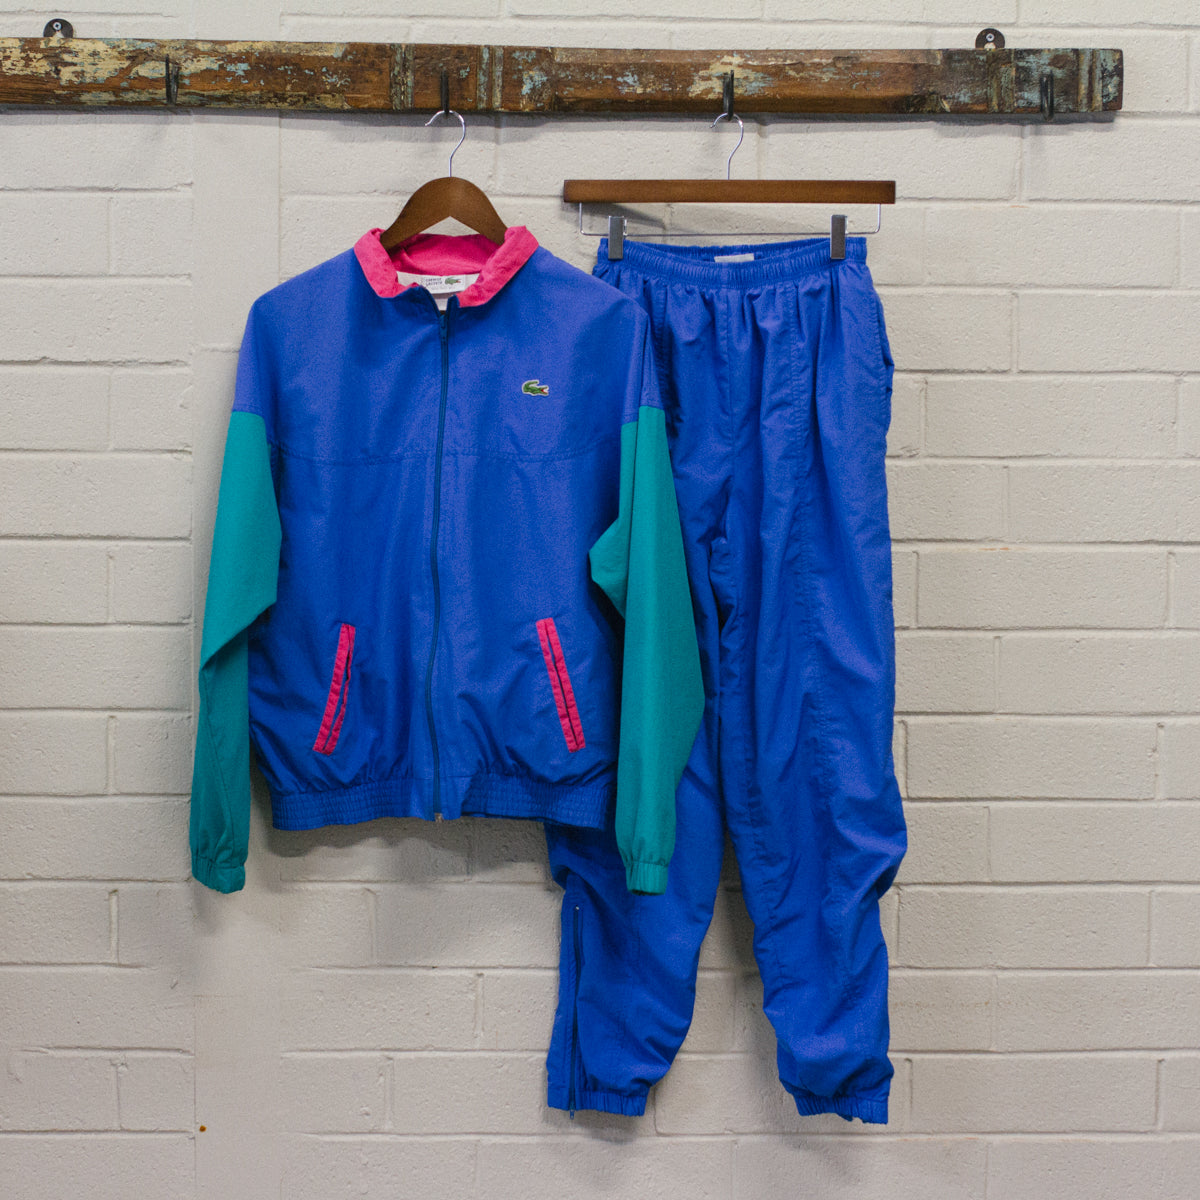 Vintage Lacoste Full Tracksuit